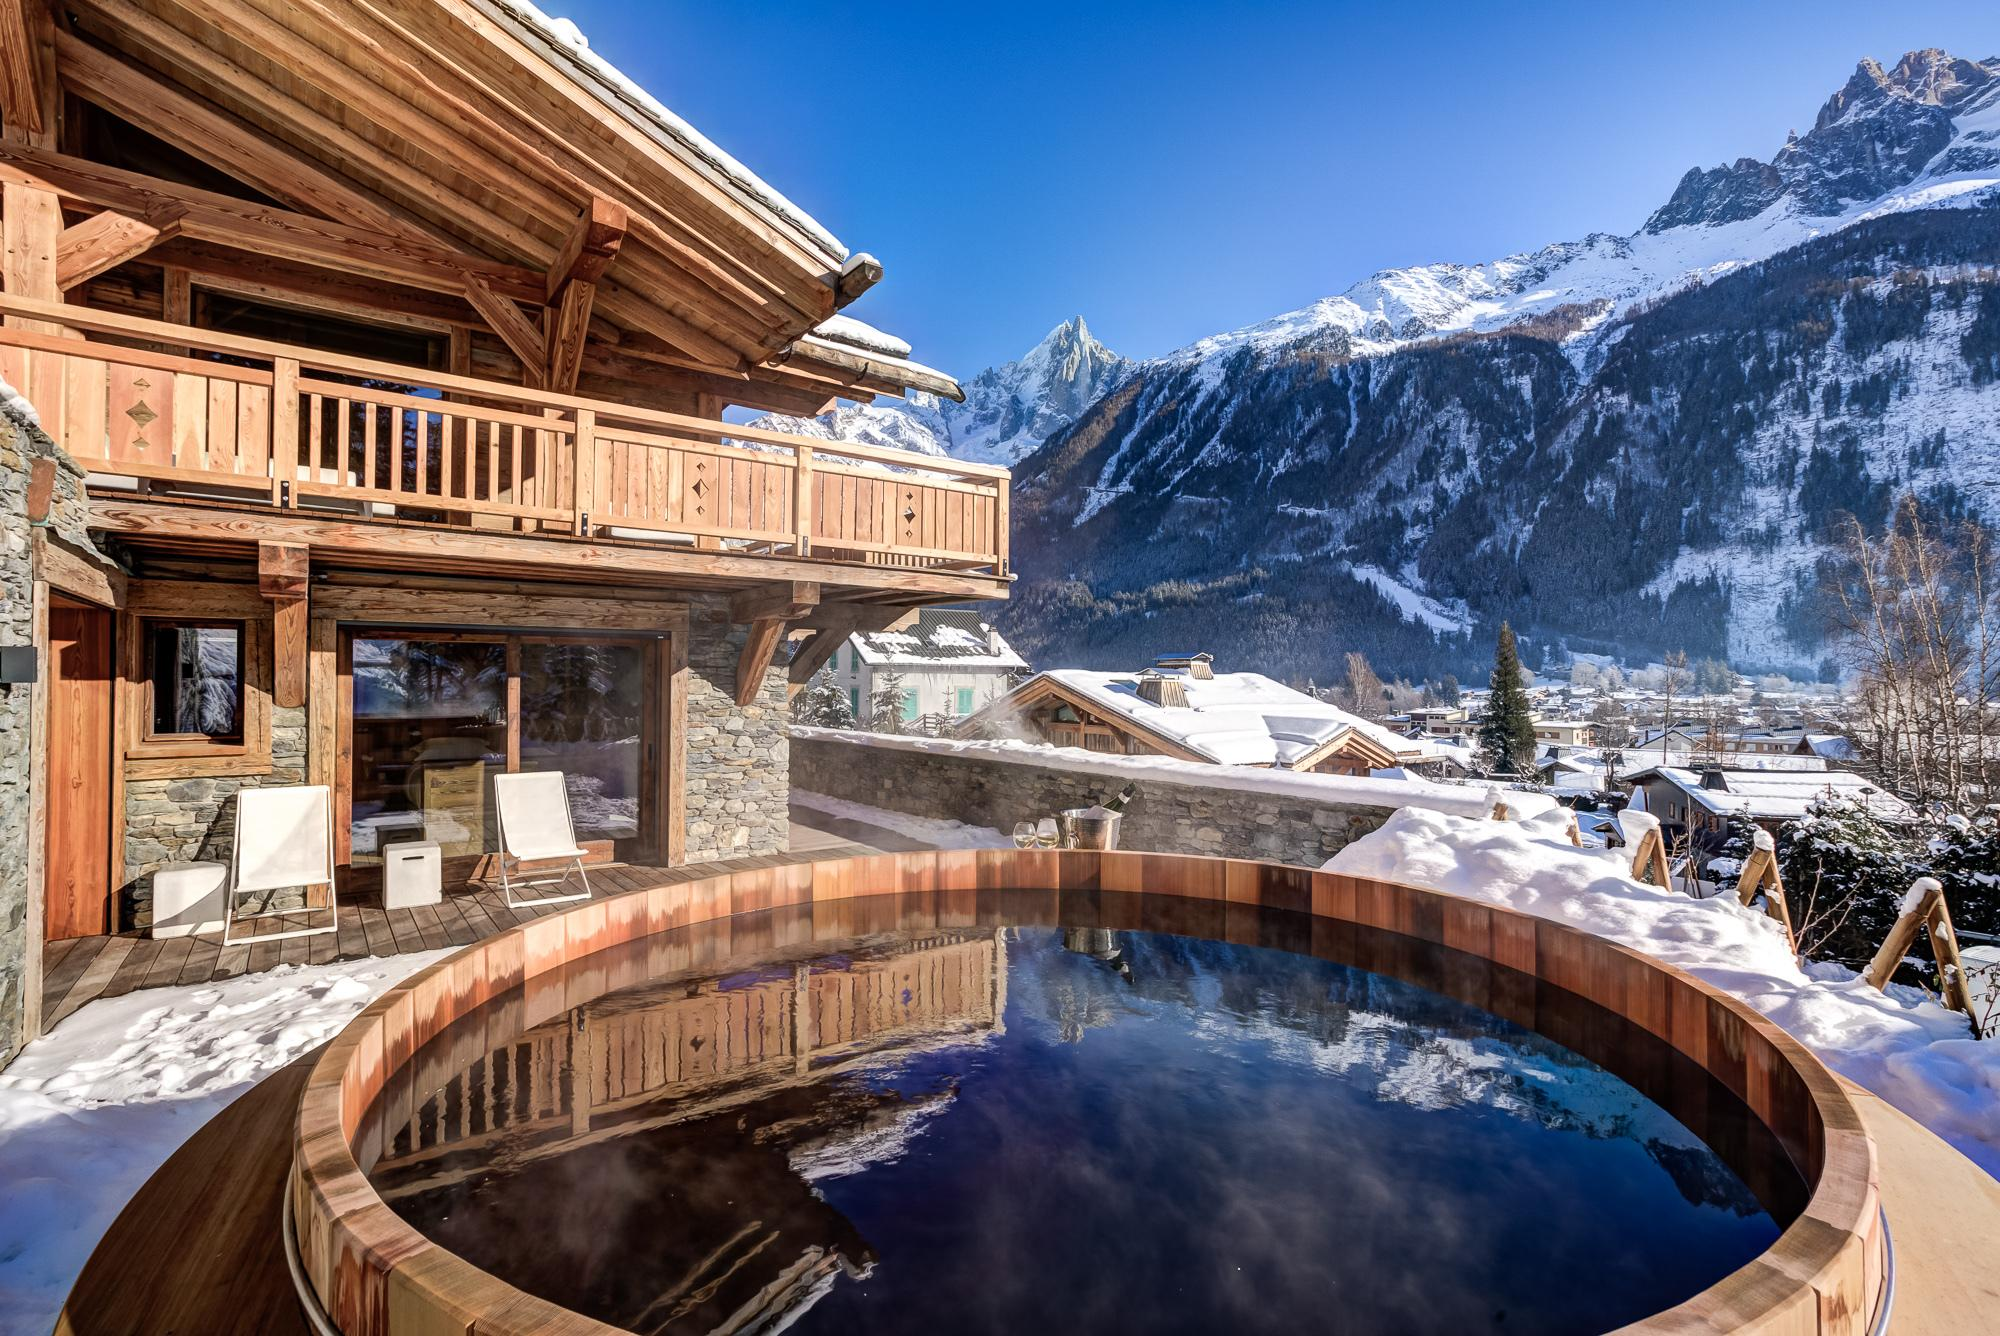 Chamonix accommodation chalets for rent in Chamonix apartments to rent in Chamonix holiday homes to rent in Chamonix